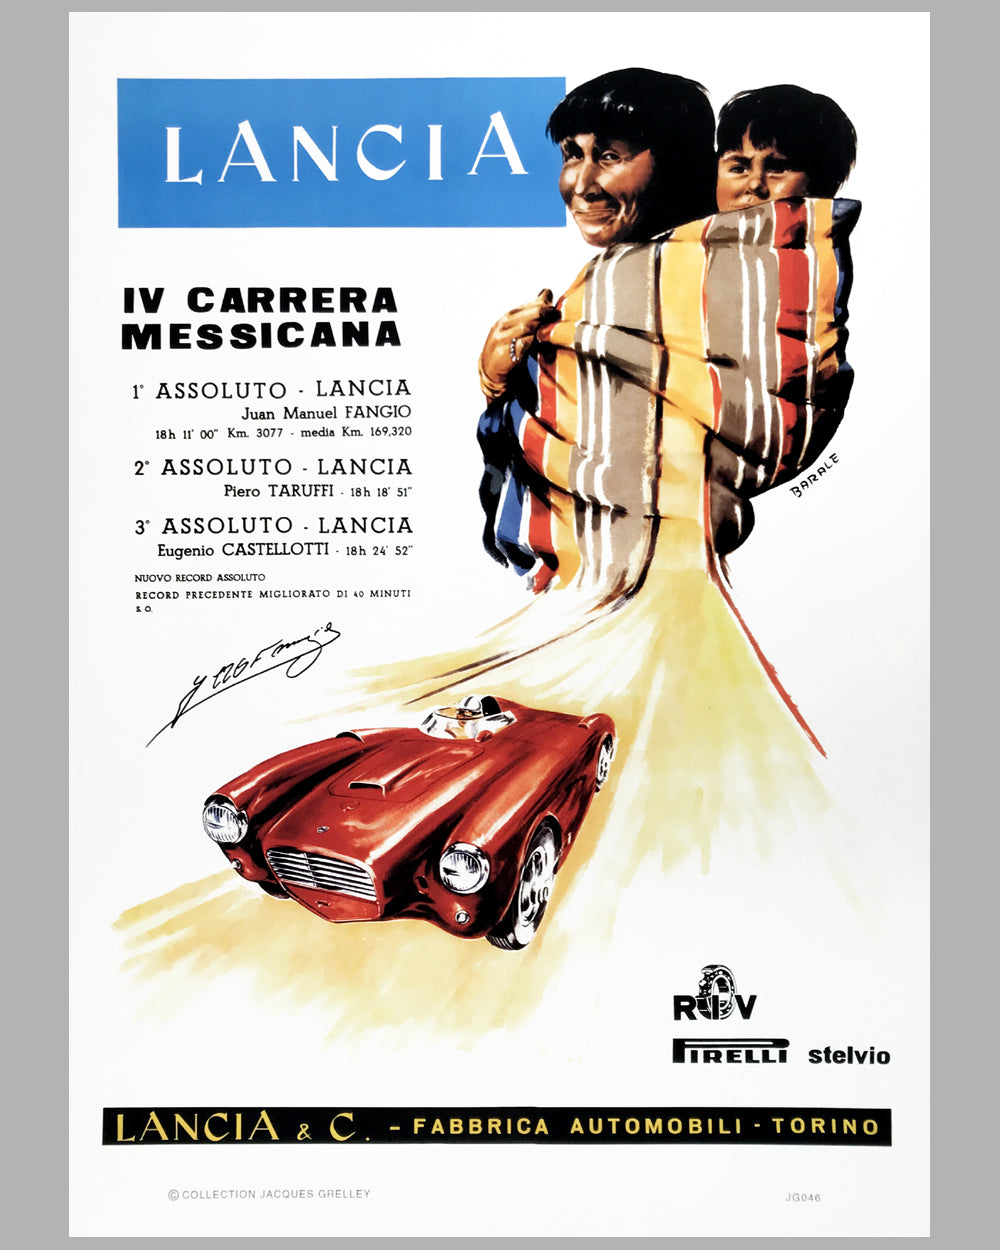 1954 Lancia victory poster by Barale, autographed by Juan Manuel Fangio